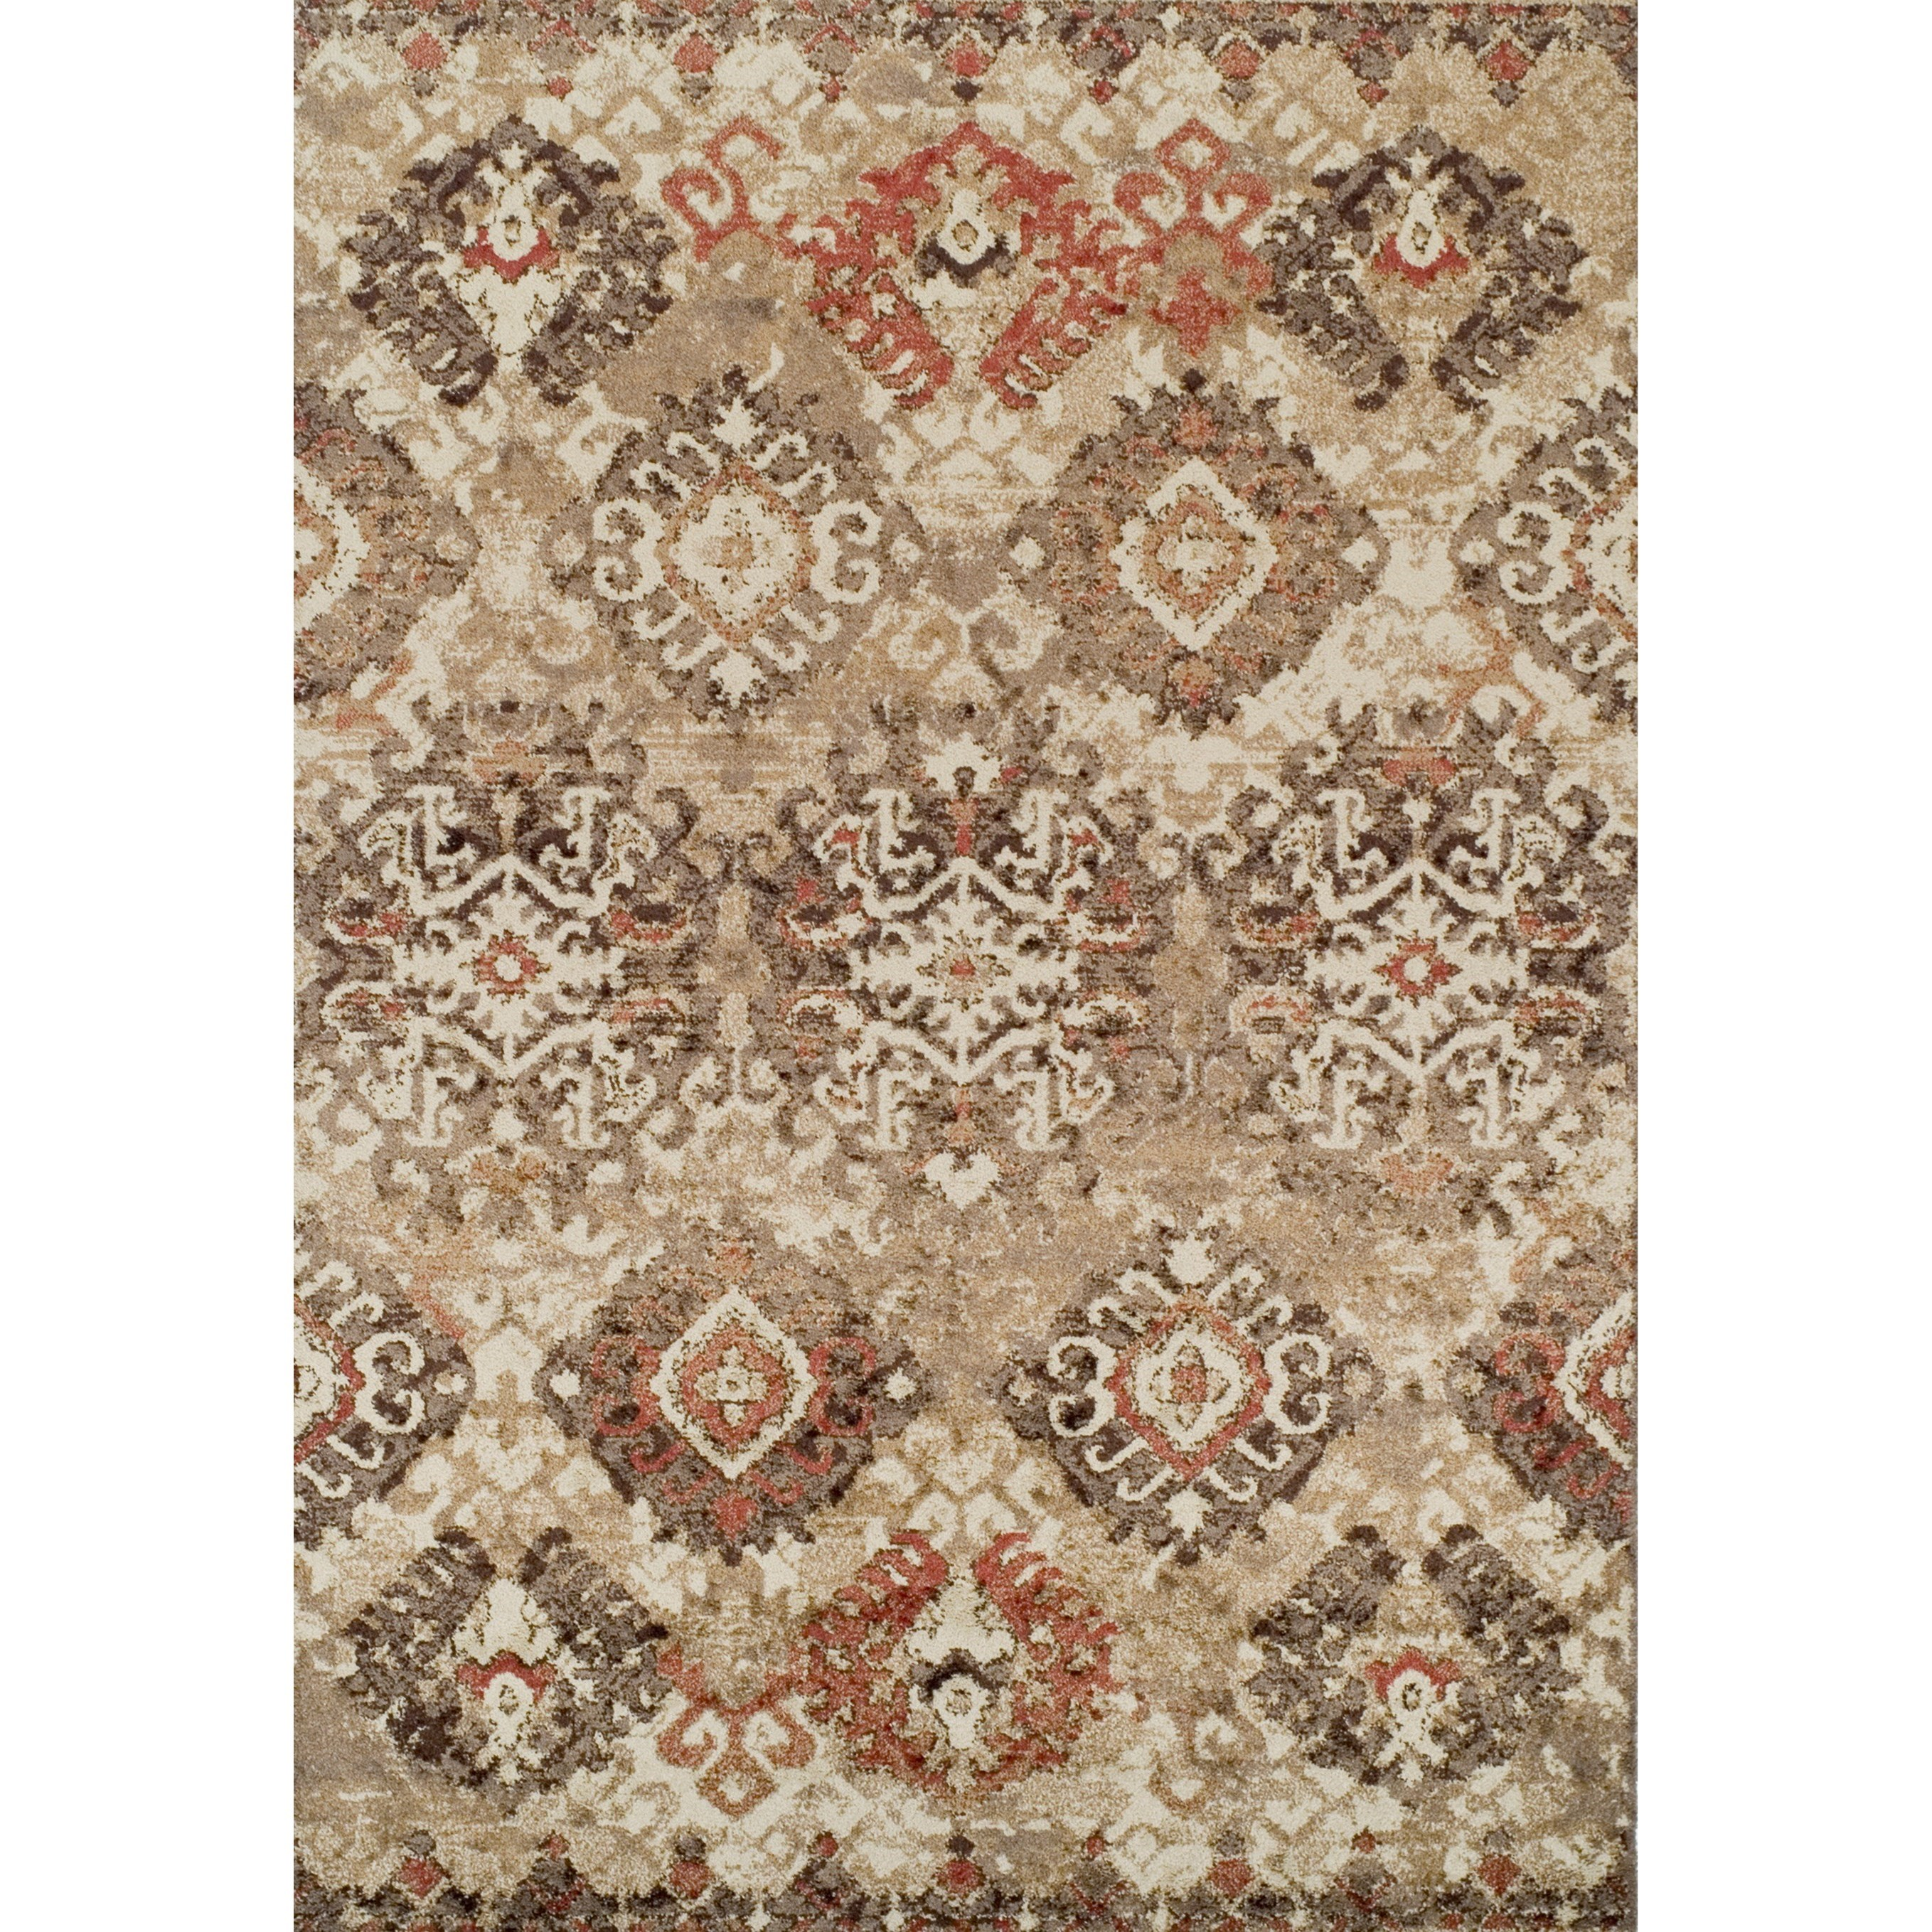 "Gala Ivory 4'11""X7' Rug by Dalyn at Sadler's Home Furnishings"